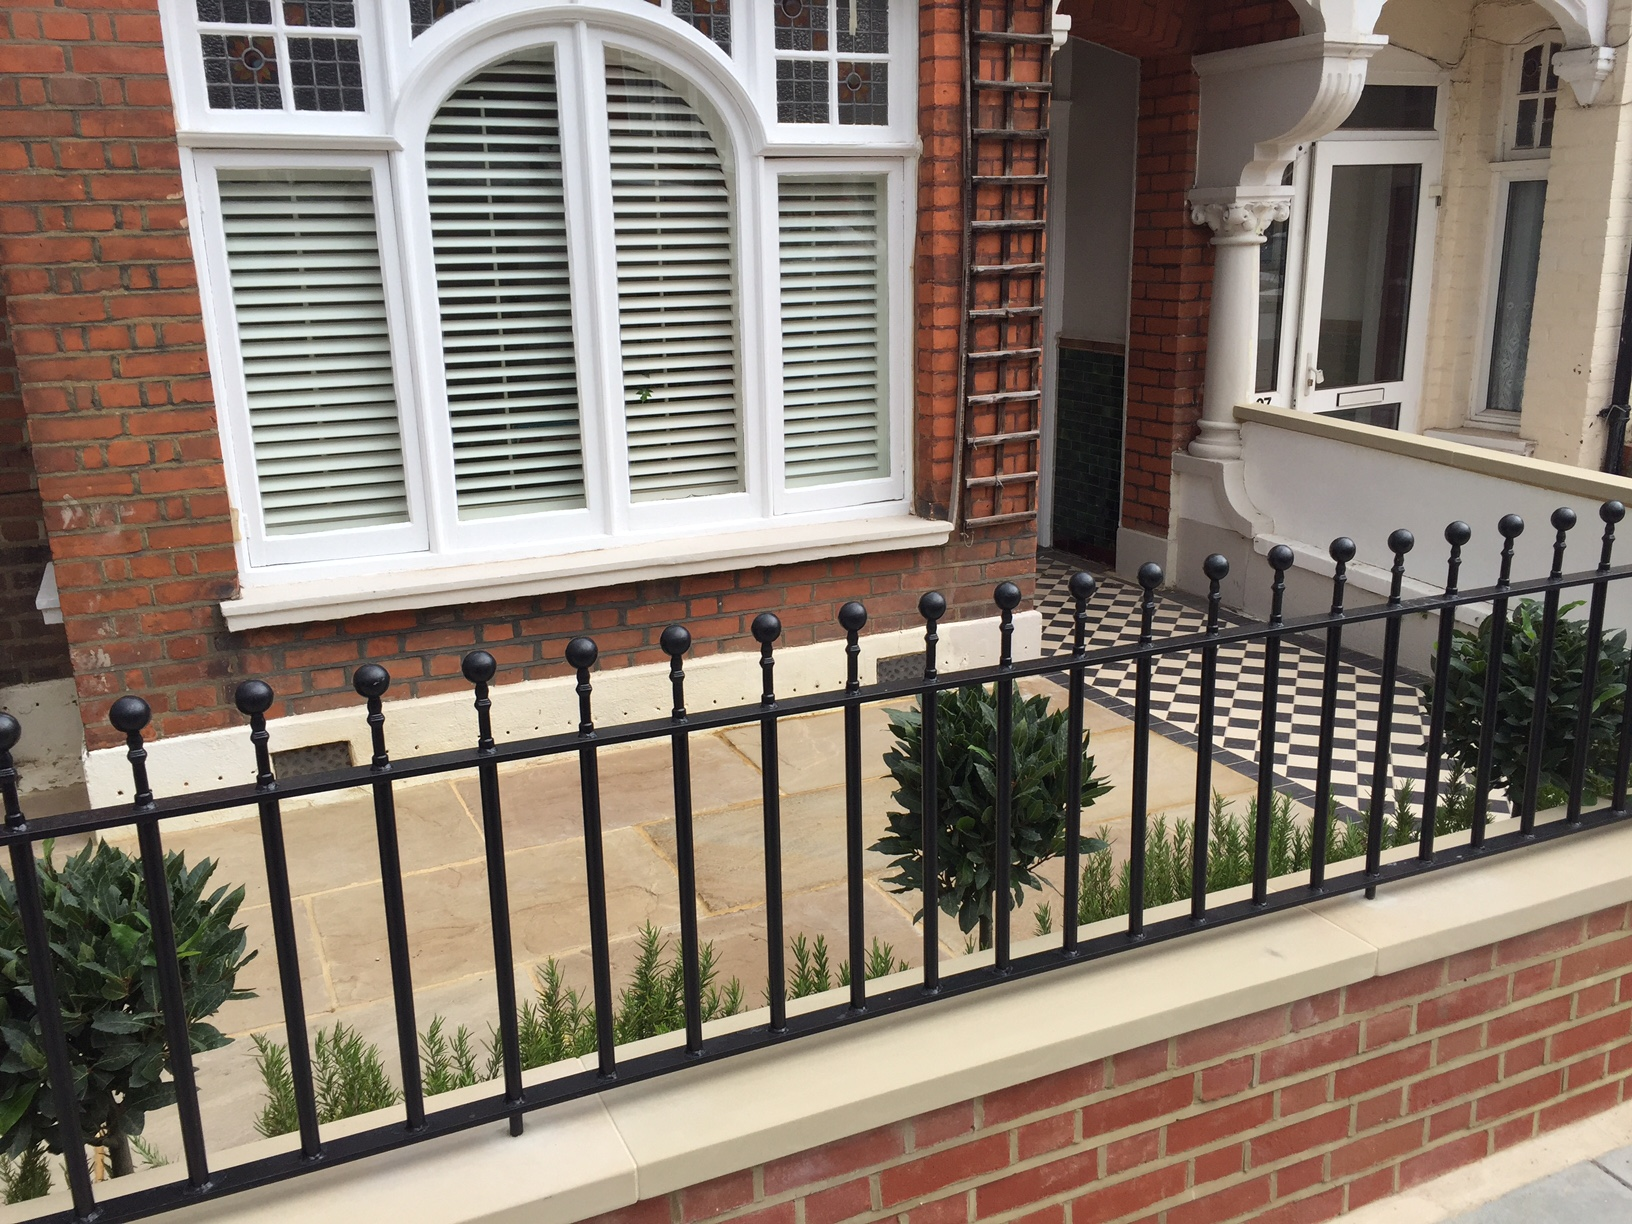 Front garden brick red wall metal gate rails planting Balham Clapham Wandsworth Earsfield London